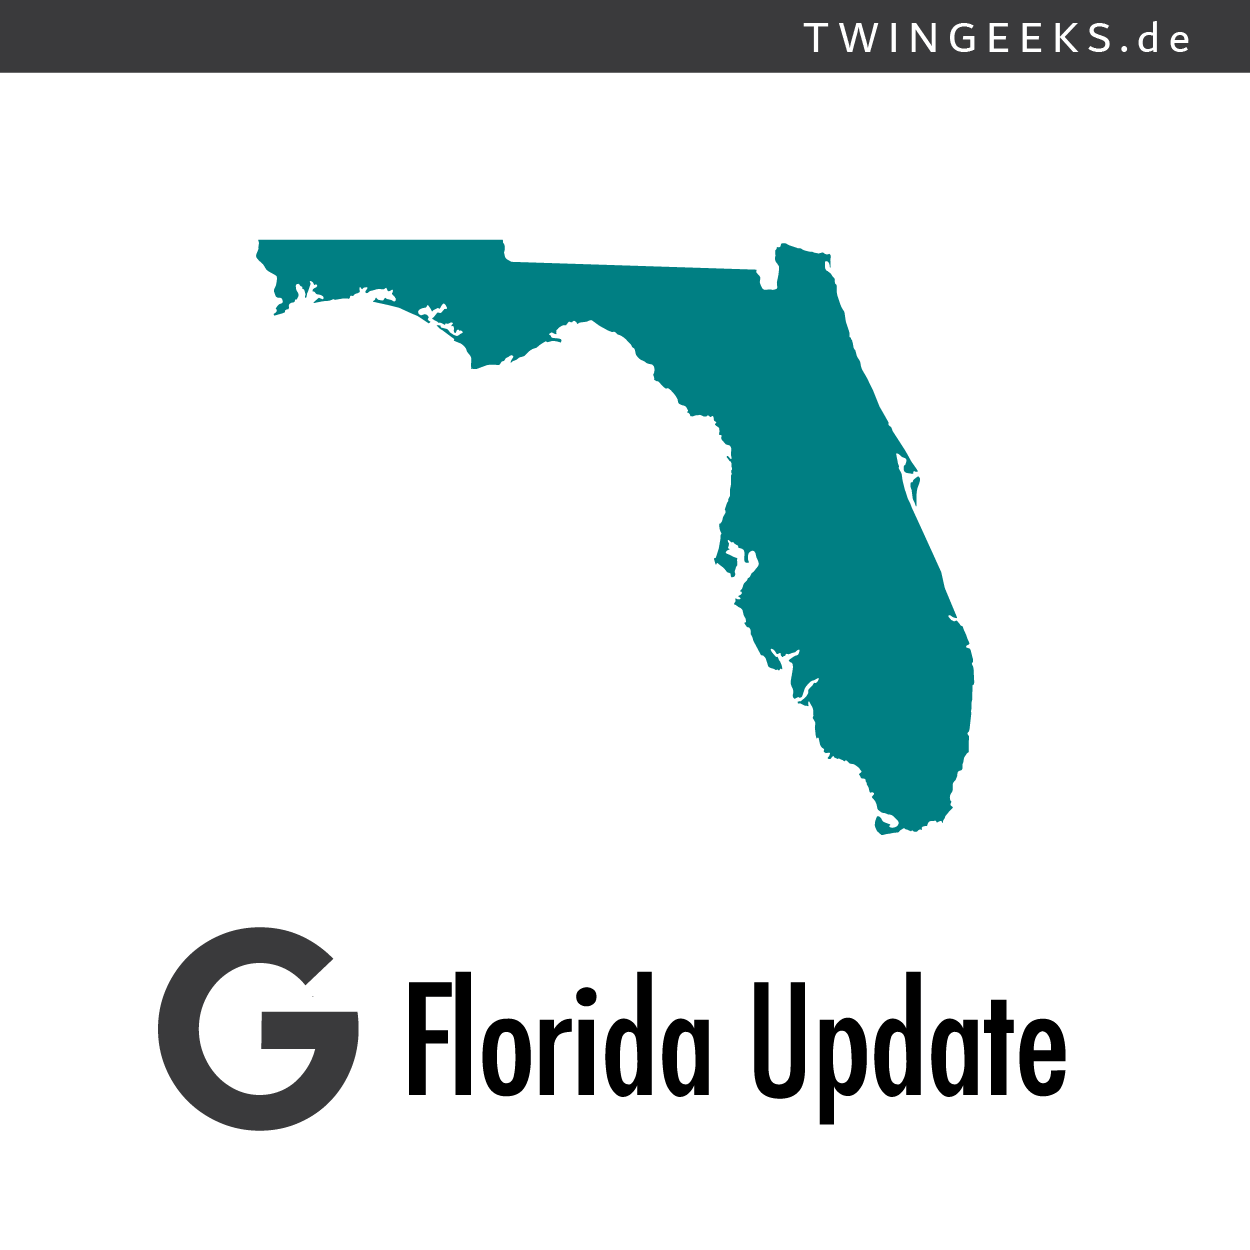 Google Florida Update